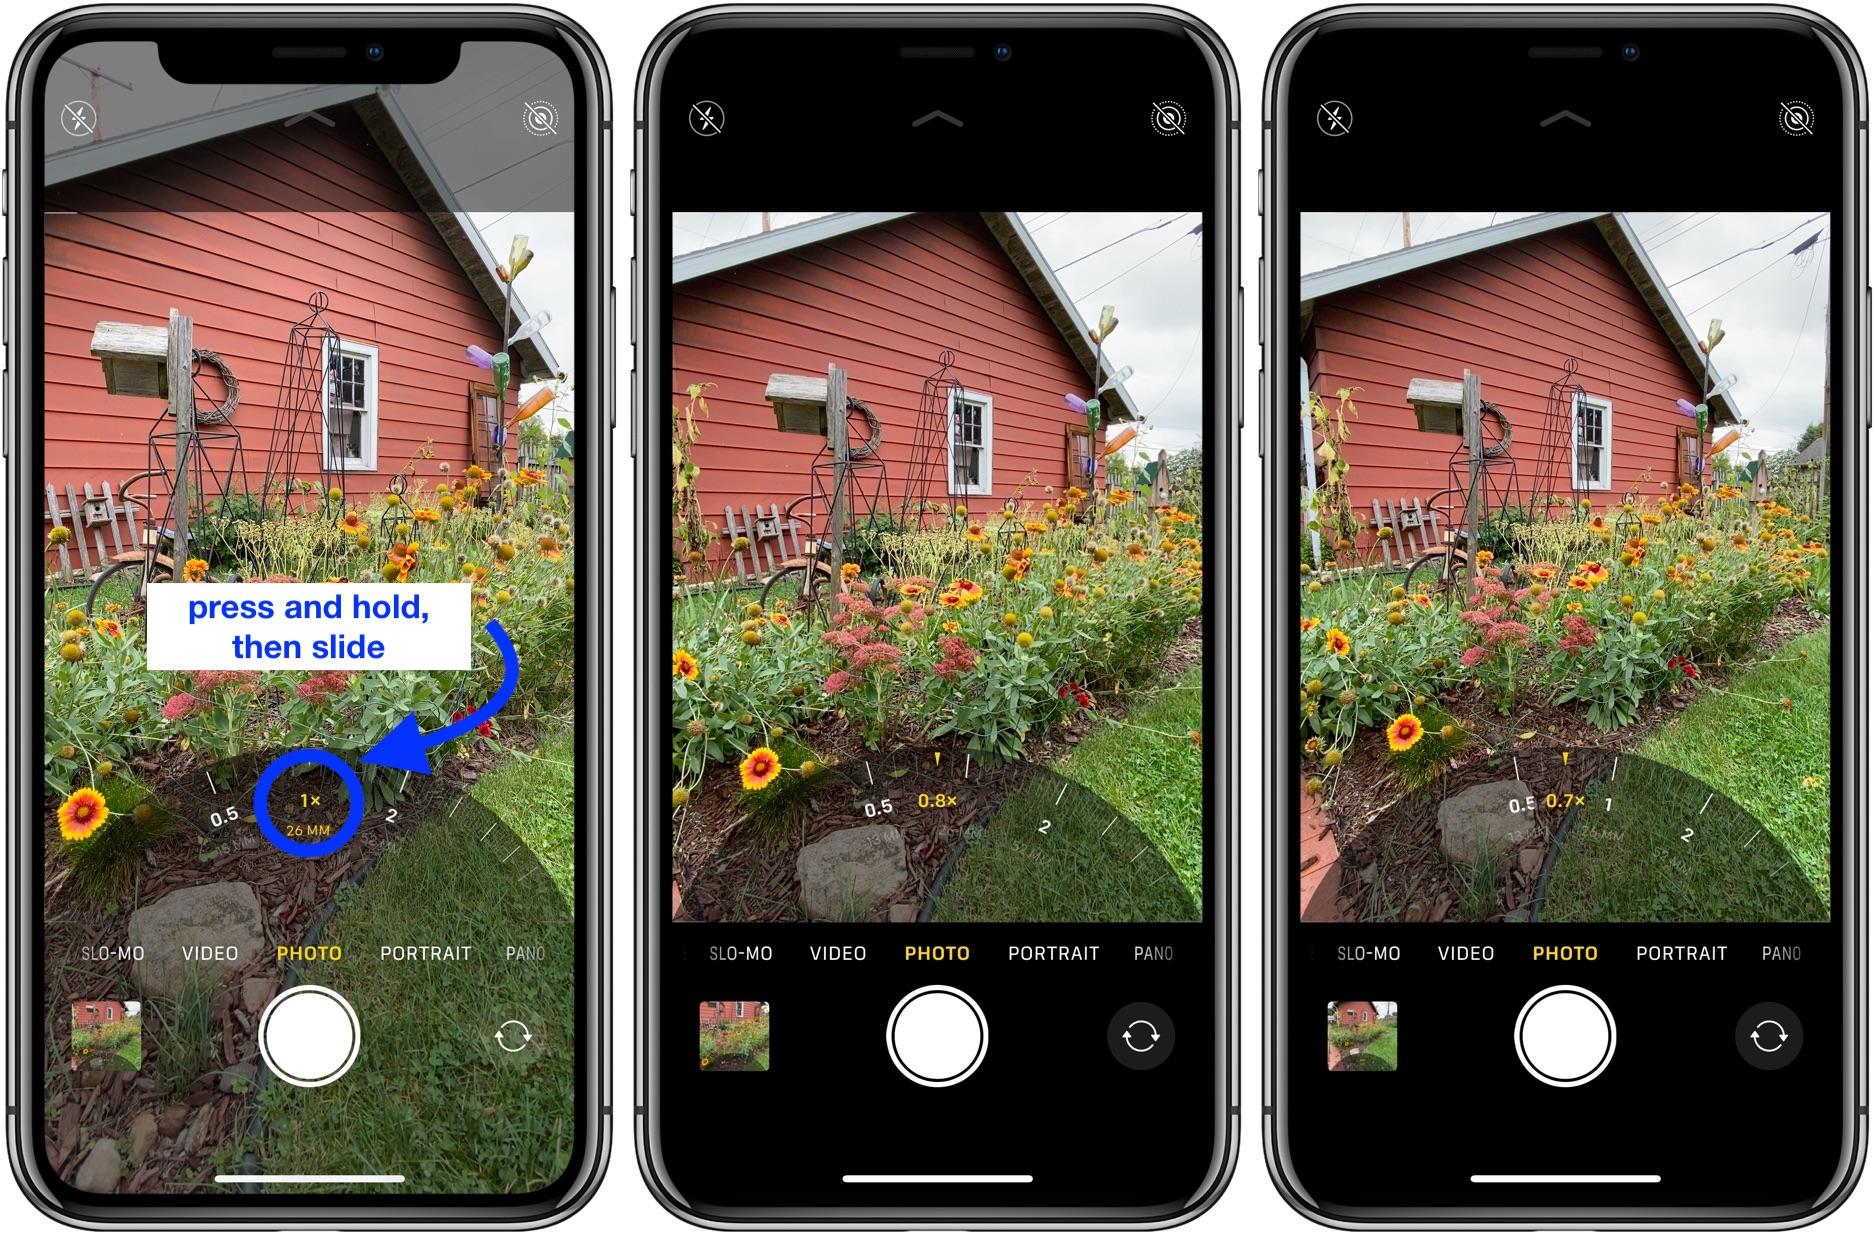 How to use ultra wide camera iPhone 11 and 11 Pro walkthrough 2